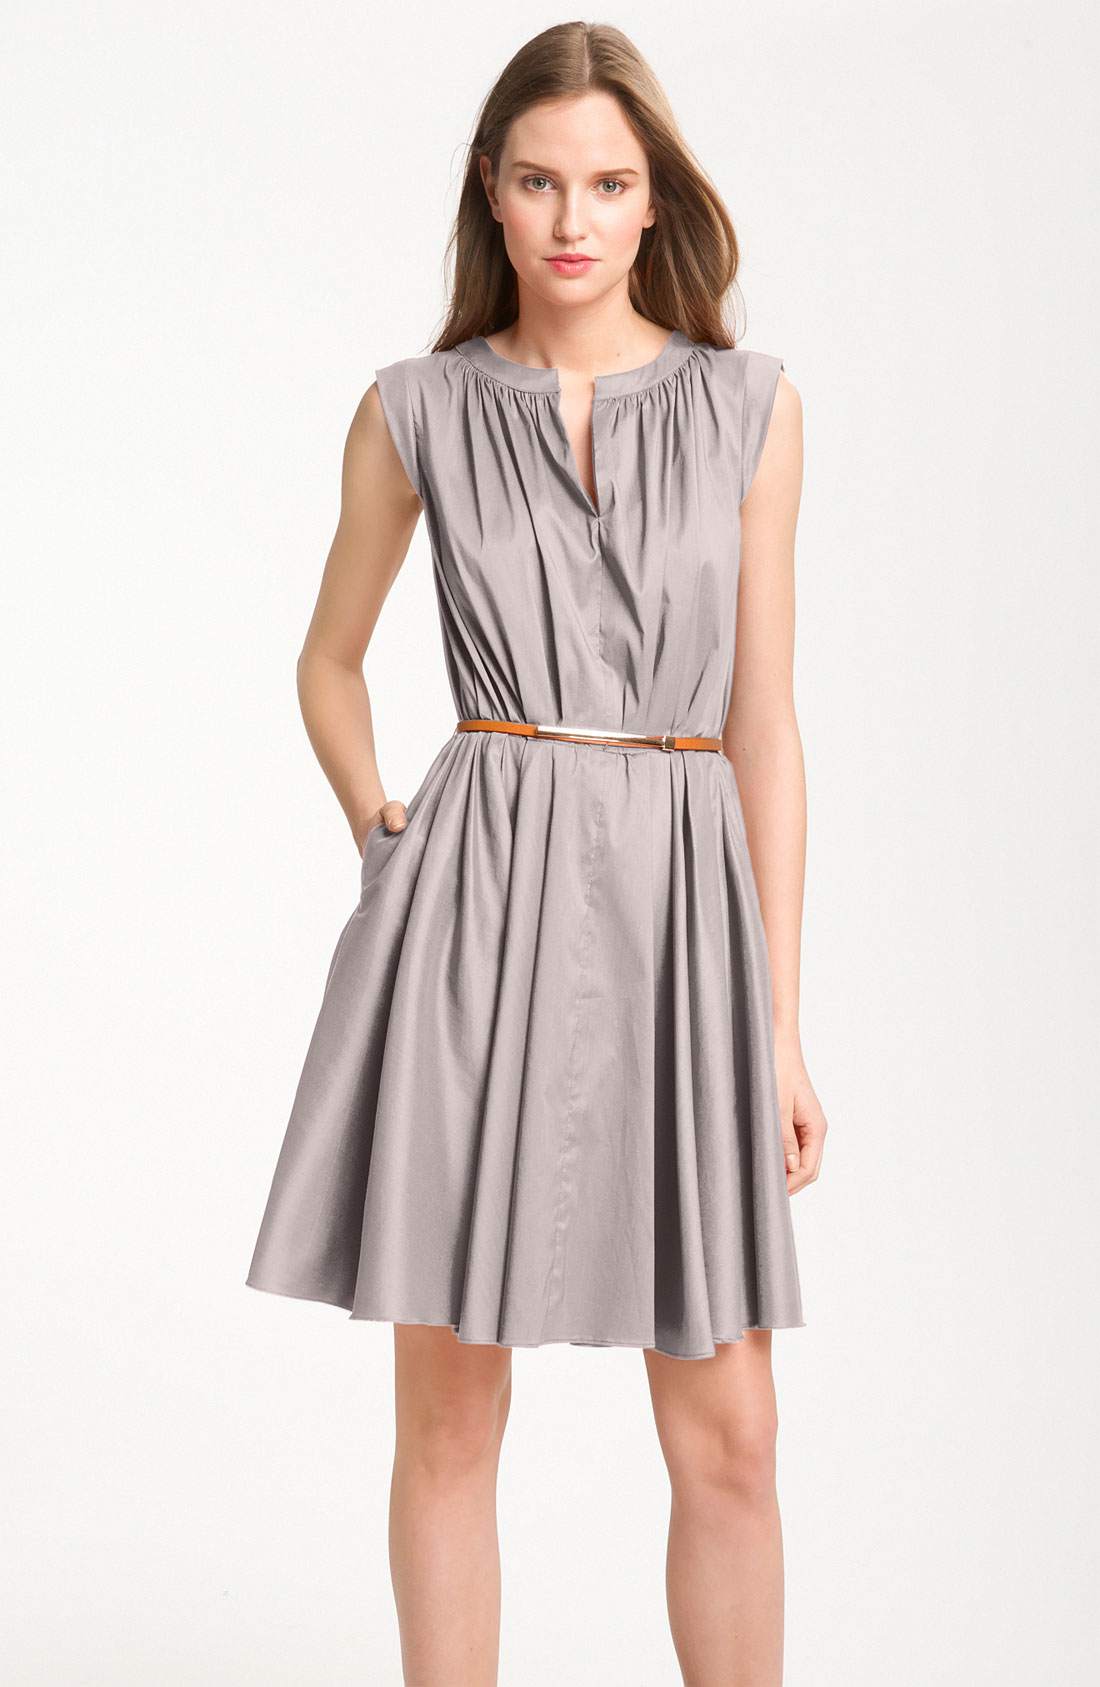 Fall wedding guest dresses to inspire you sang maestro for Grey dress wedding guest